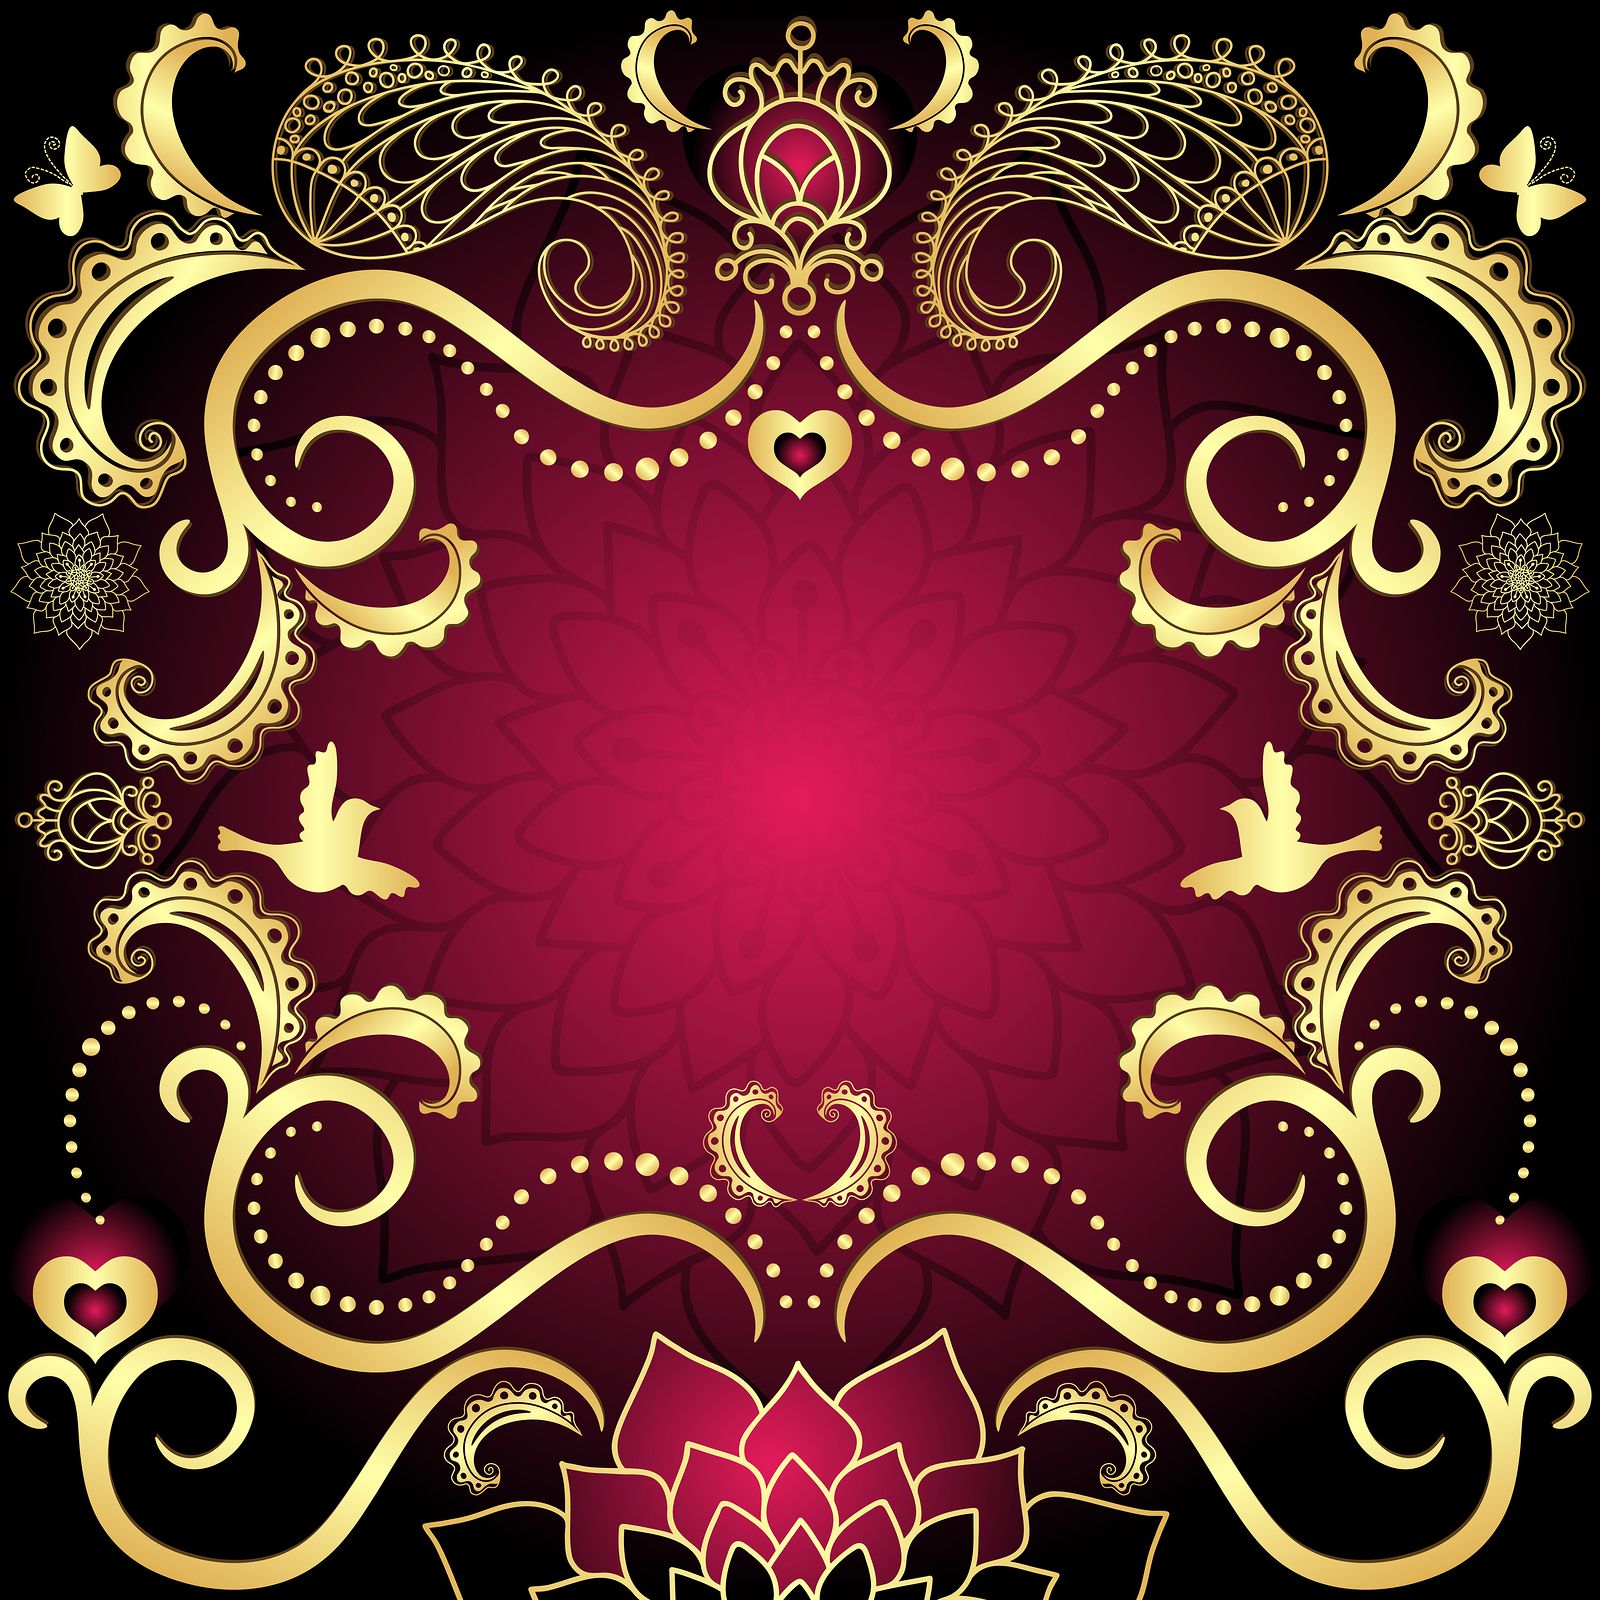 #wedding, #invitation #Indian #wedding background for your ...